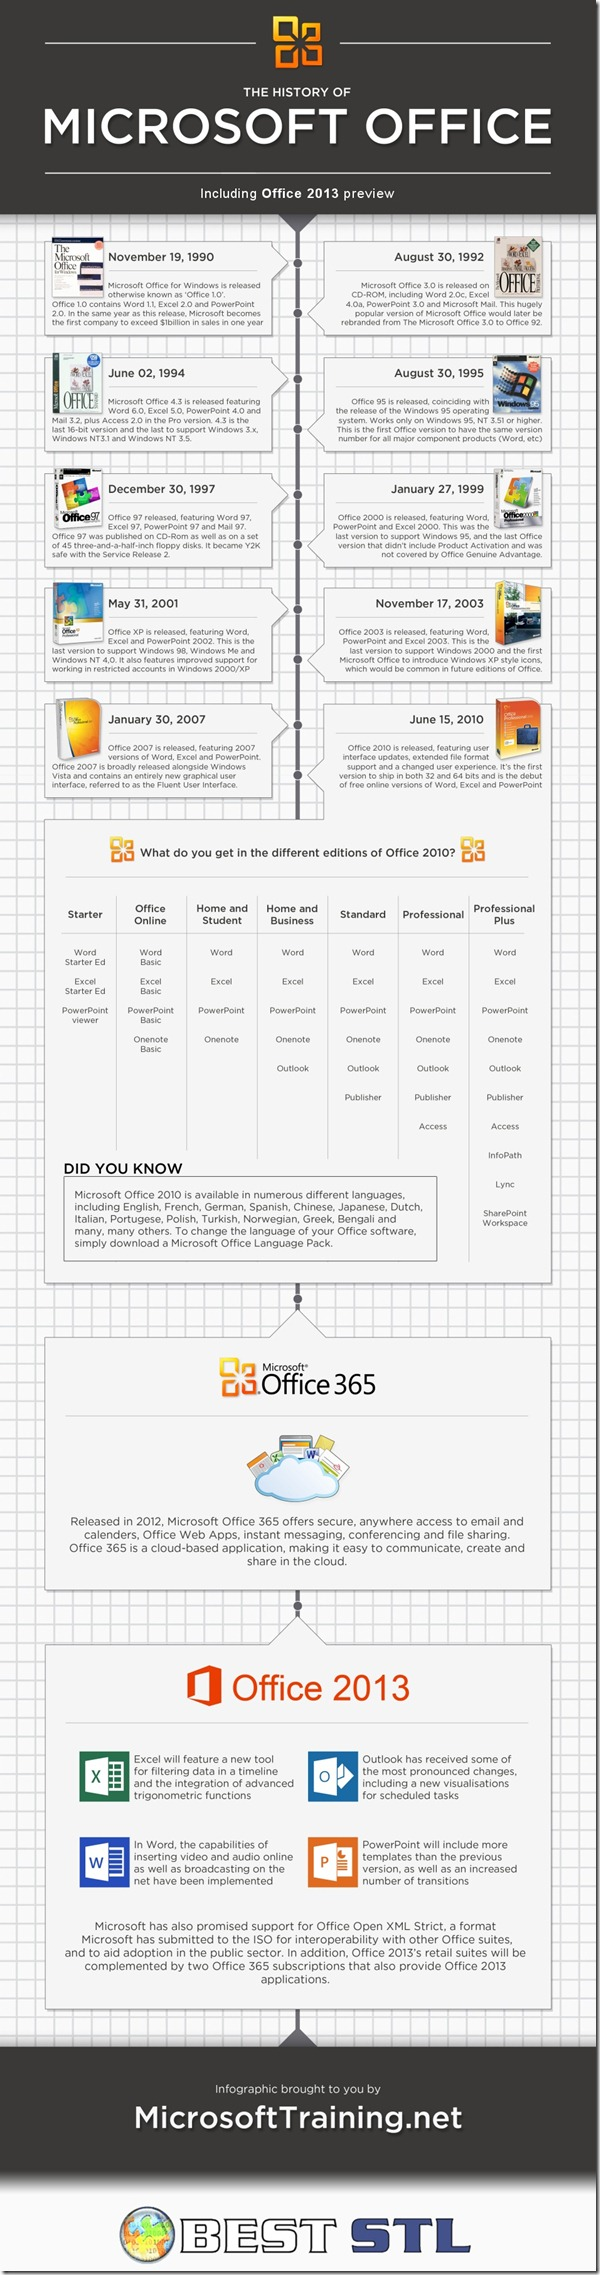 history-of-microsoft-office